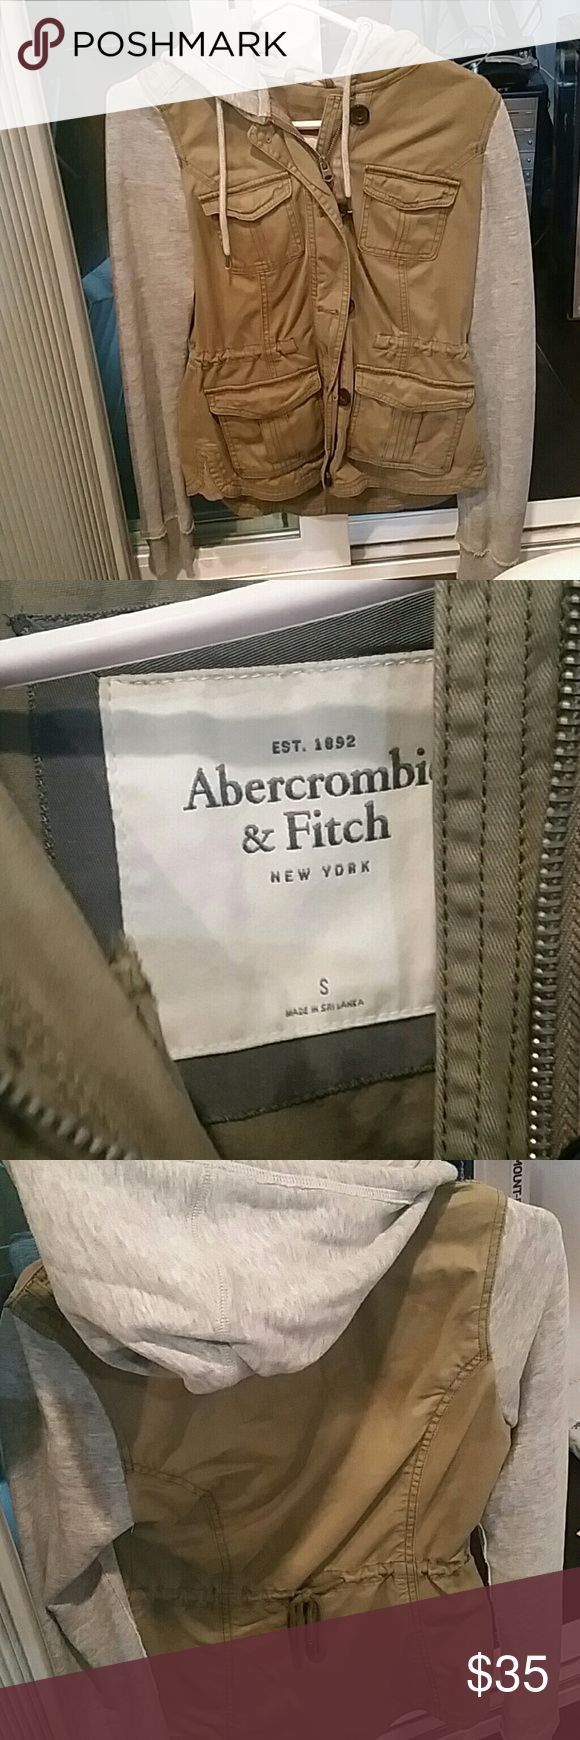 Abercrombie and Fitch jacket size S Cute two tone color jacket. Super soft fleece sleeves and hood. Cute string tie in the back to achieve a fitted  waist. Army green and grey color. Used but in like new condition. Abercrombie & Fitch Jackets & Coats Utility Jackets